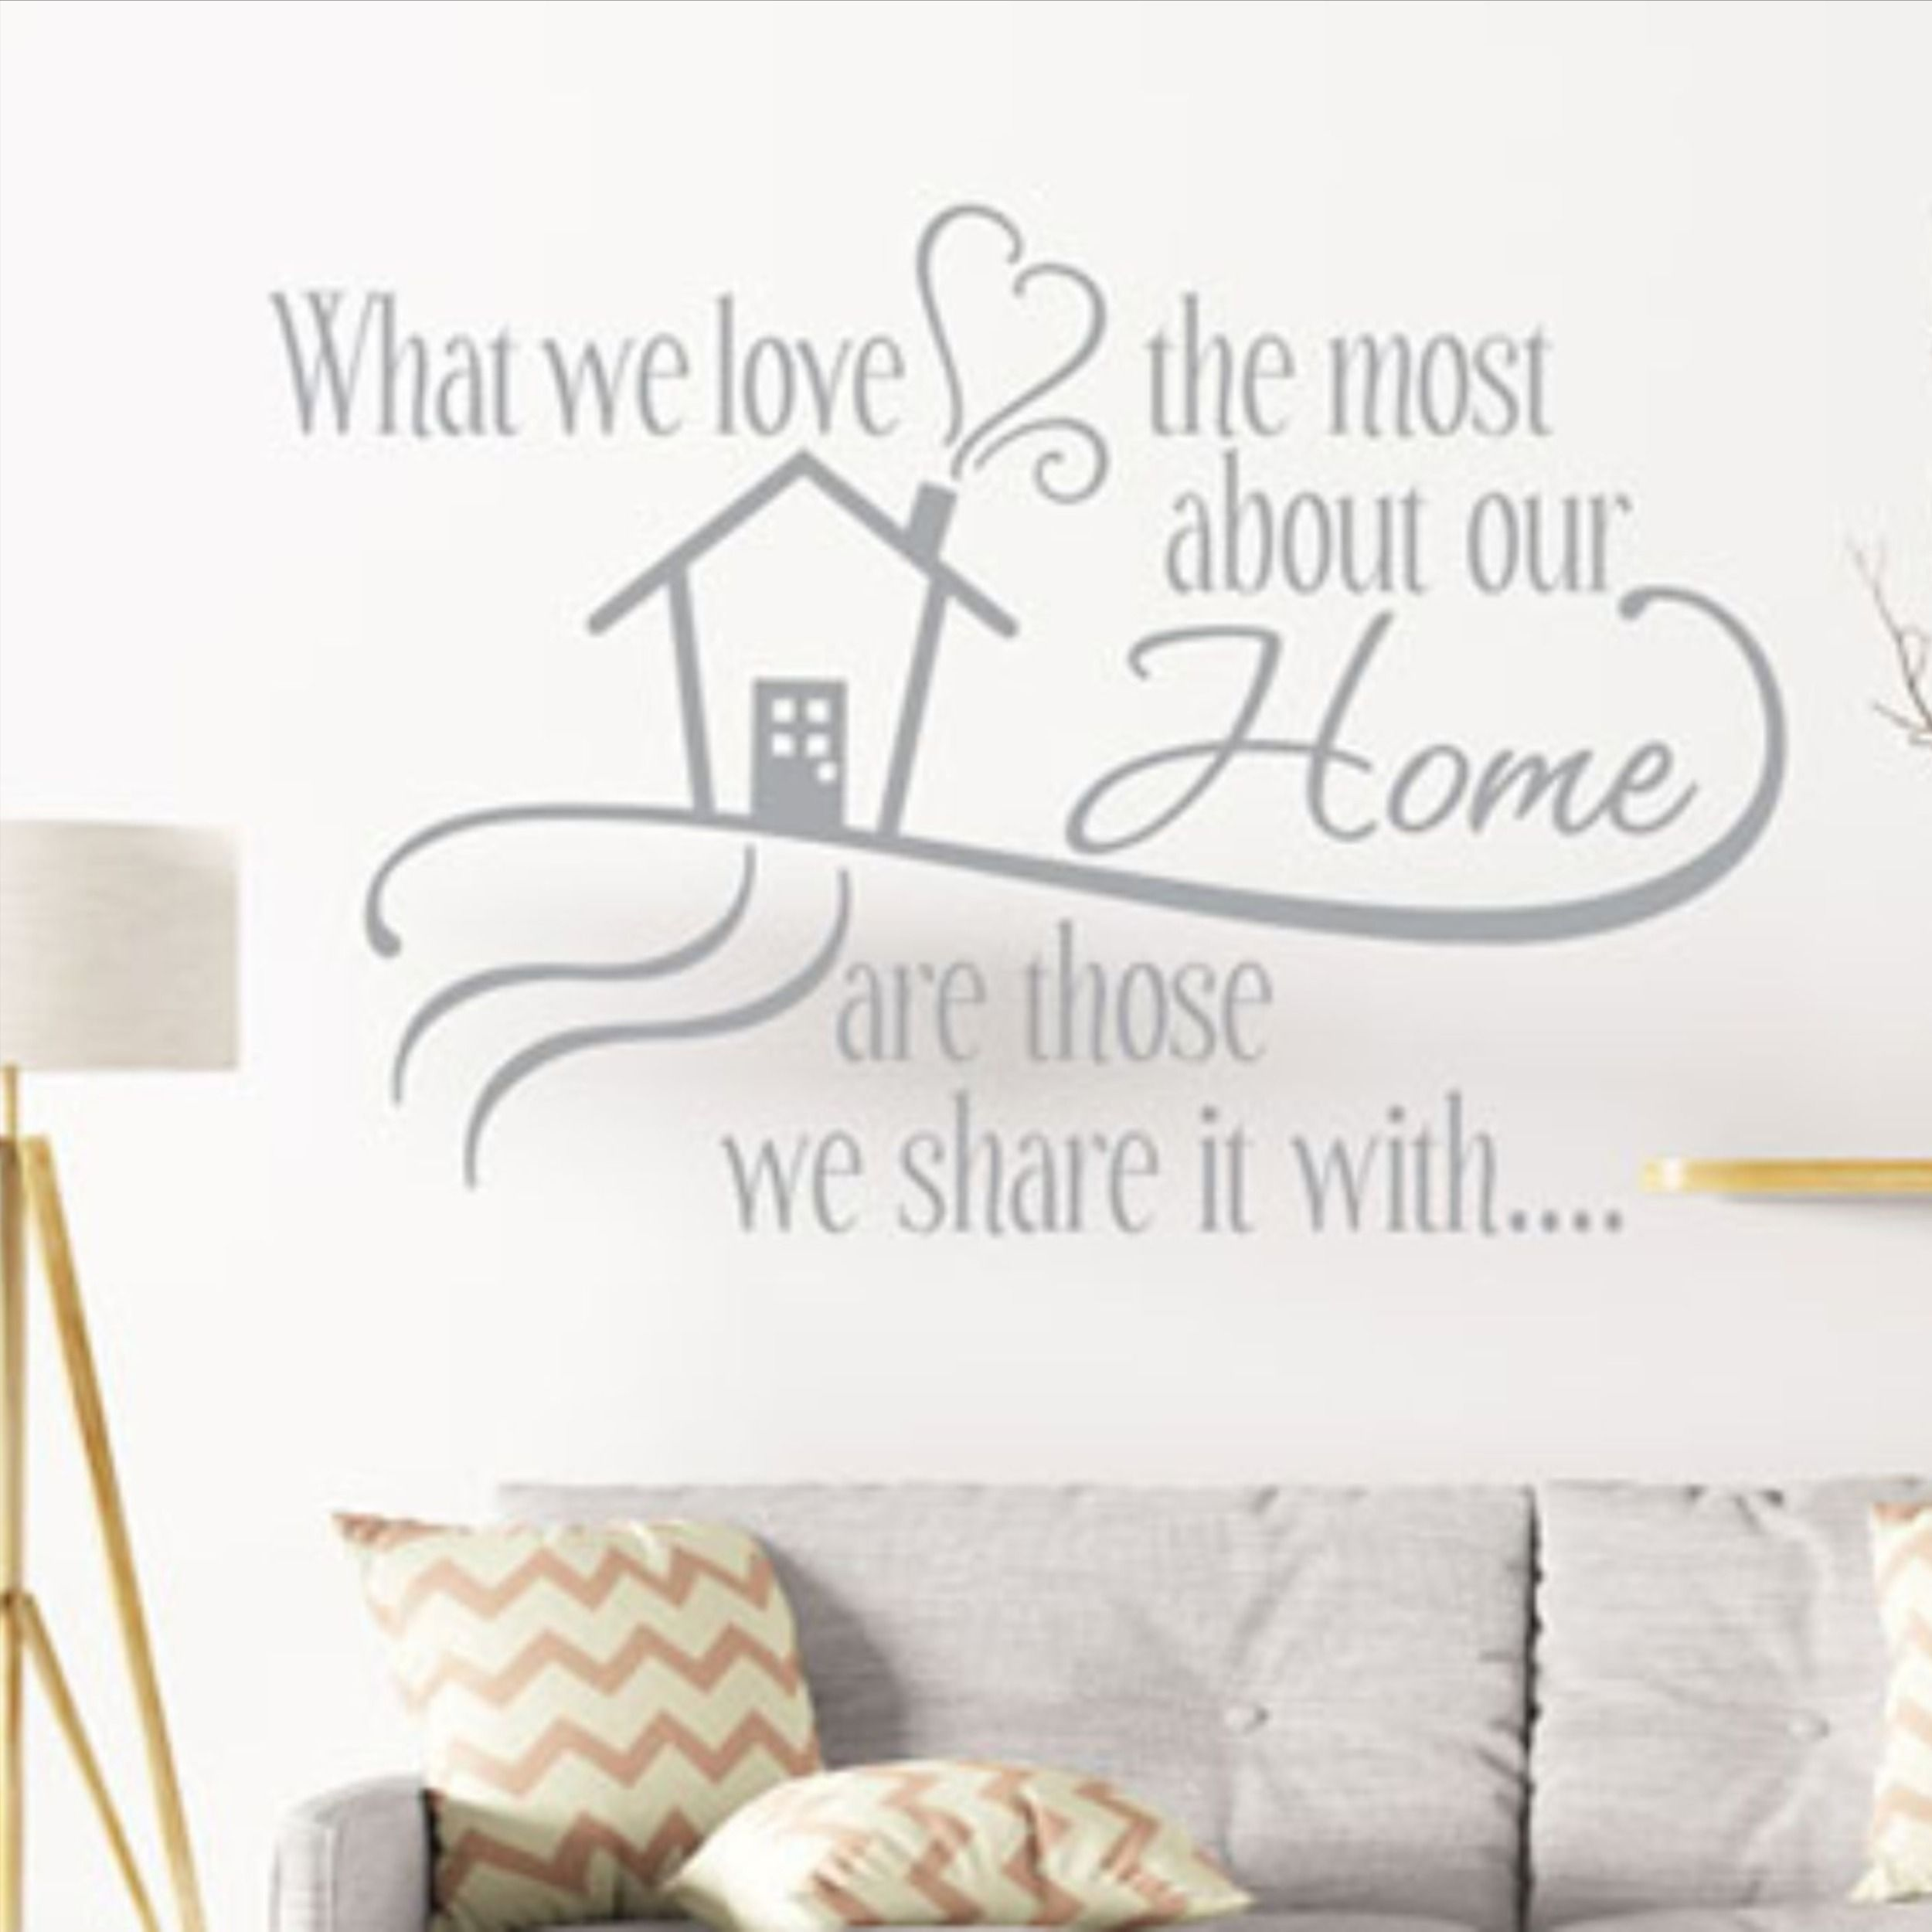 What We Love Most About Our Home Are Those We Share It With Wall Decal Family Room Decor In 2020 Family Room Decorating Family Room Walls Vinyl Wall Words